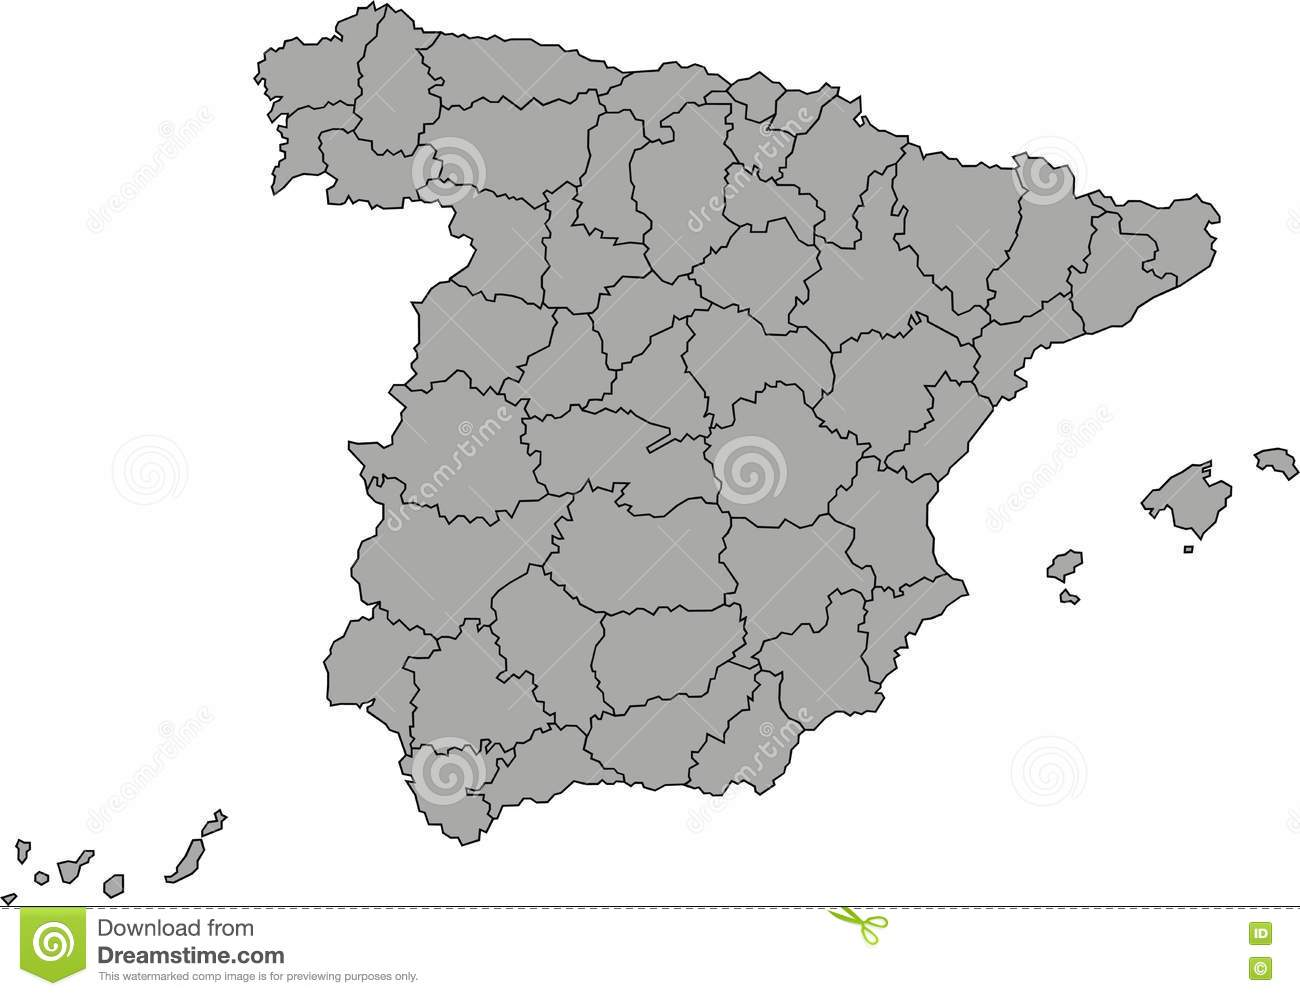 Map Of Spain By Province.Map Of Spain Stock Vector Illustration Of Spain Province 69504830